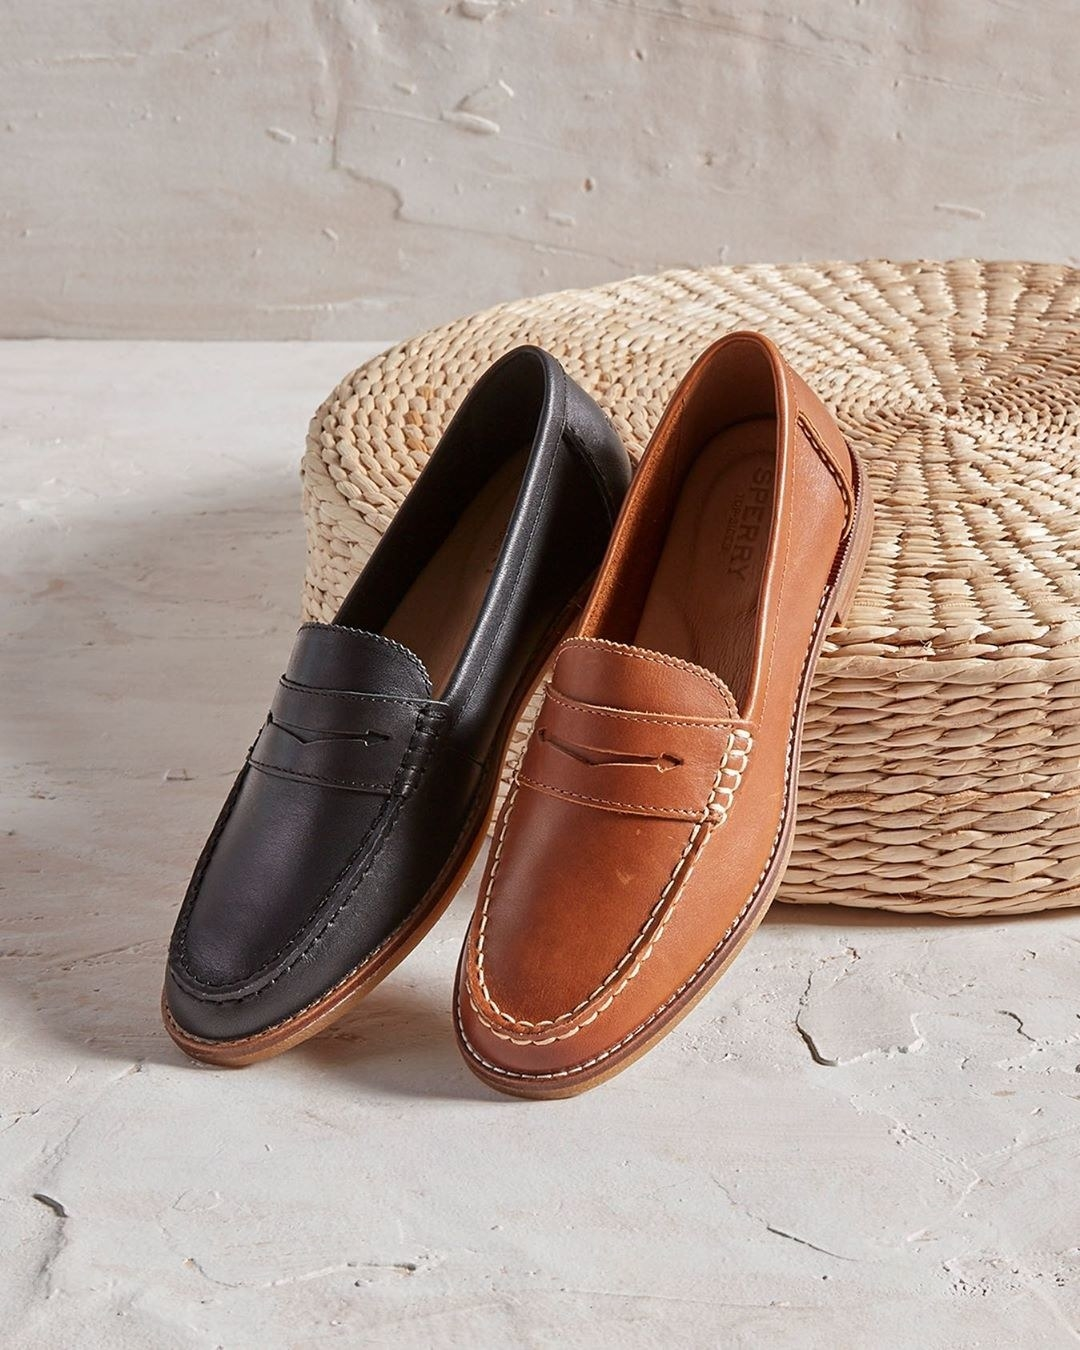 A black loafer and brown loafer sitting next to each other